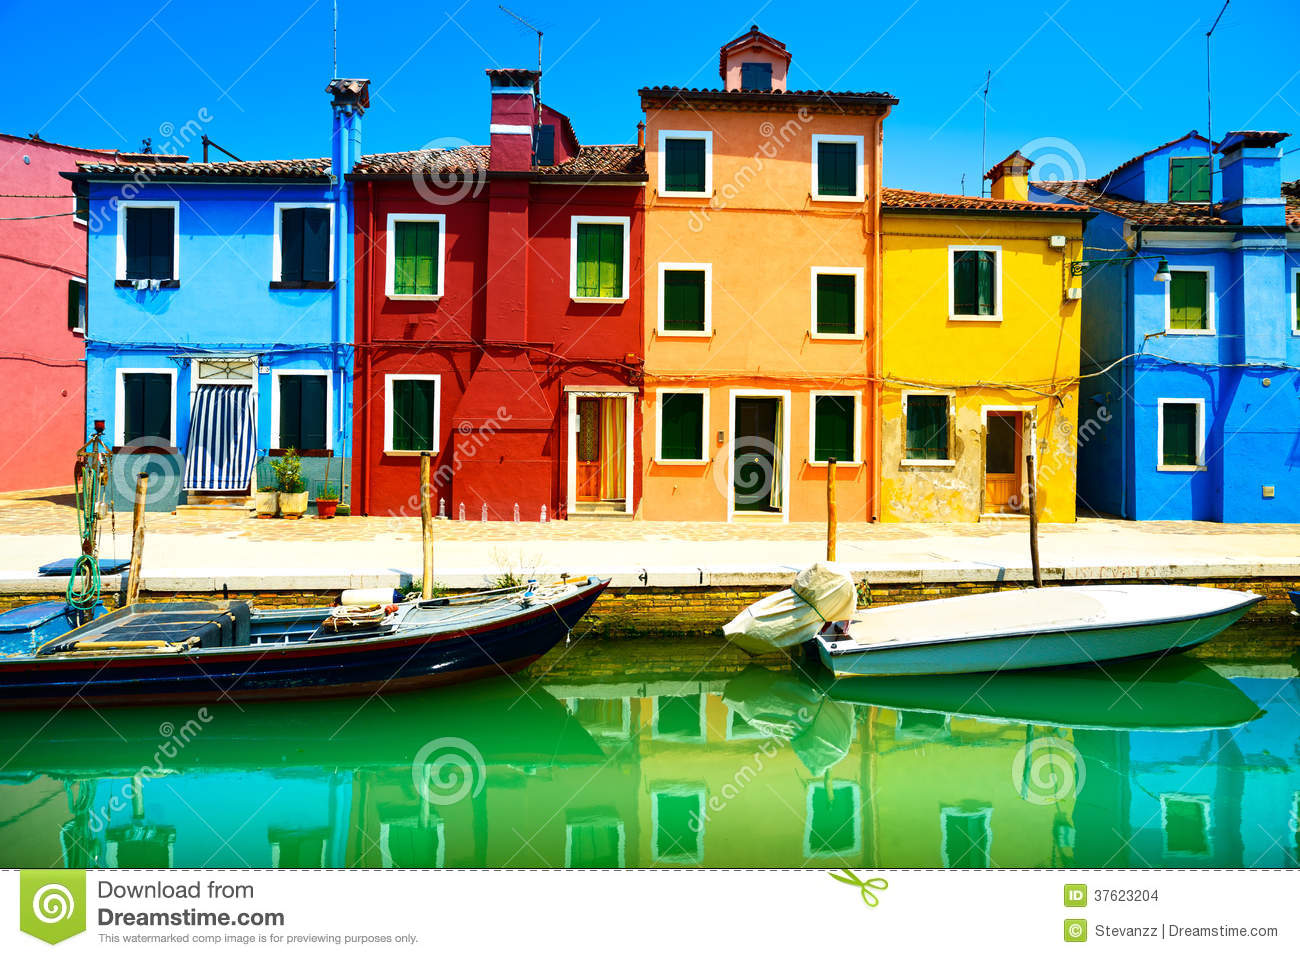 Colorful House venice landmark burano island street colorful houses italy stock